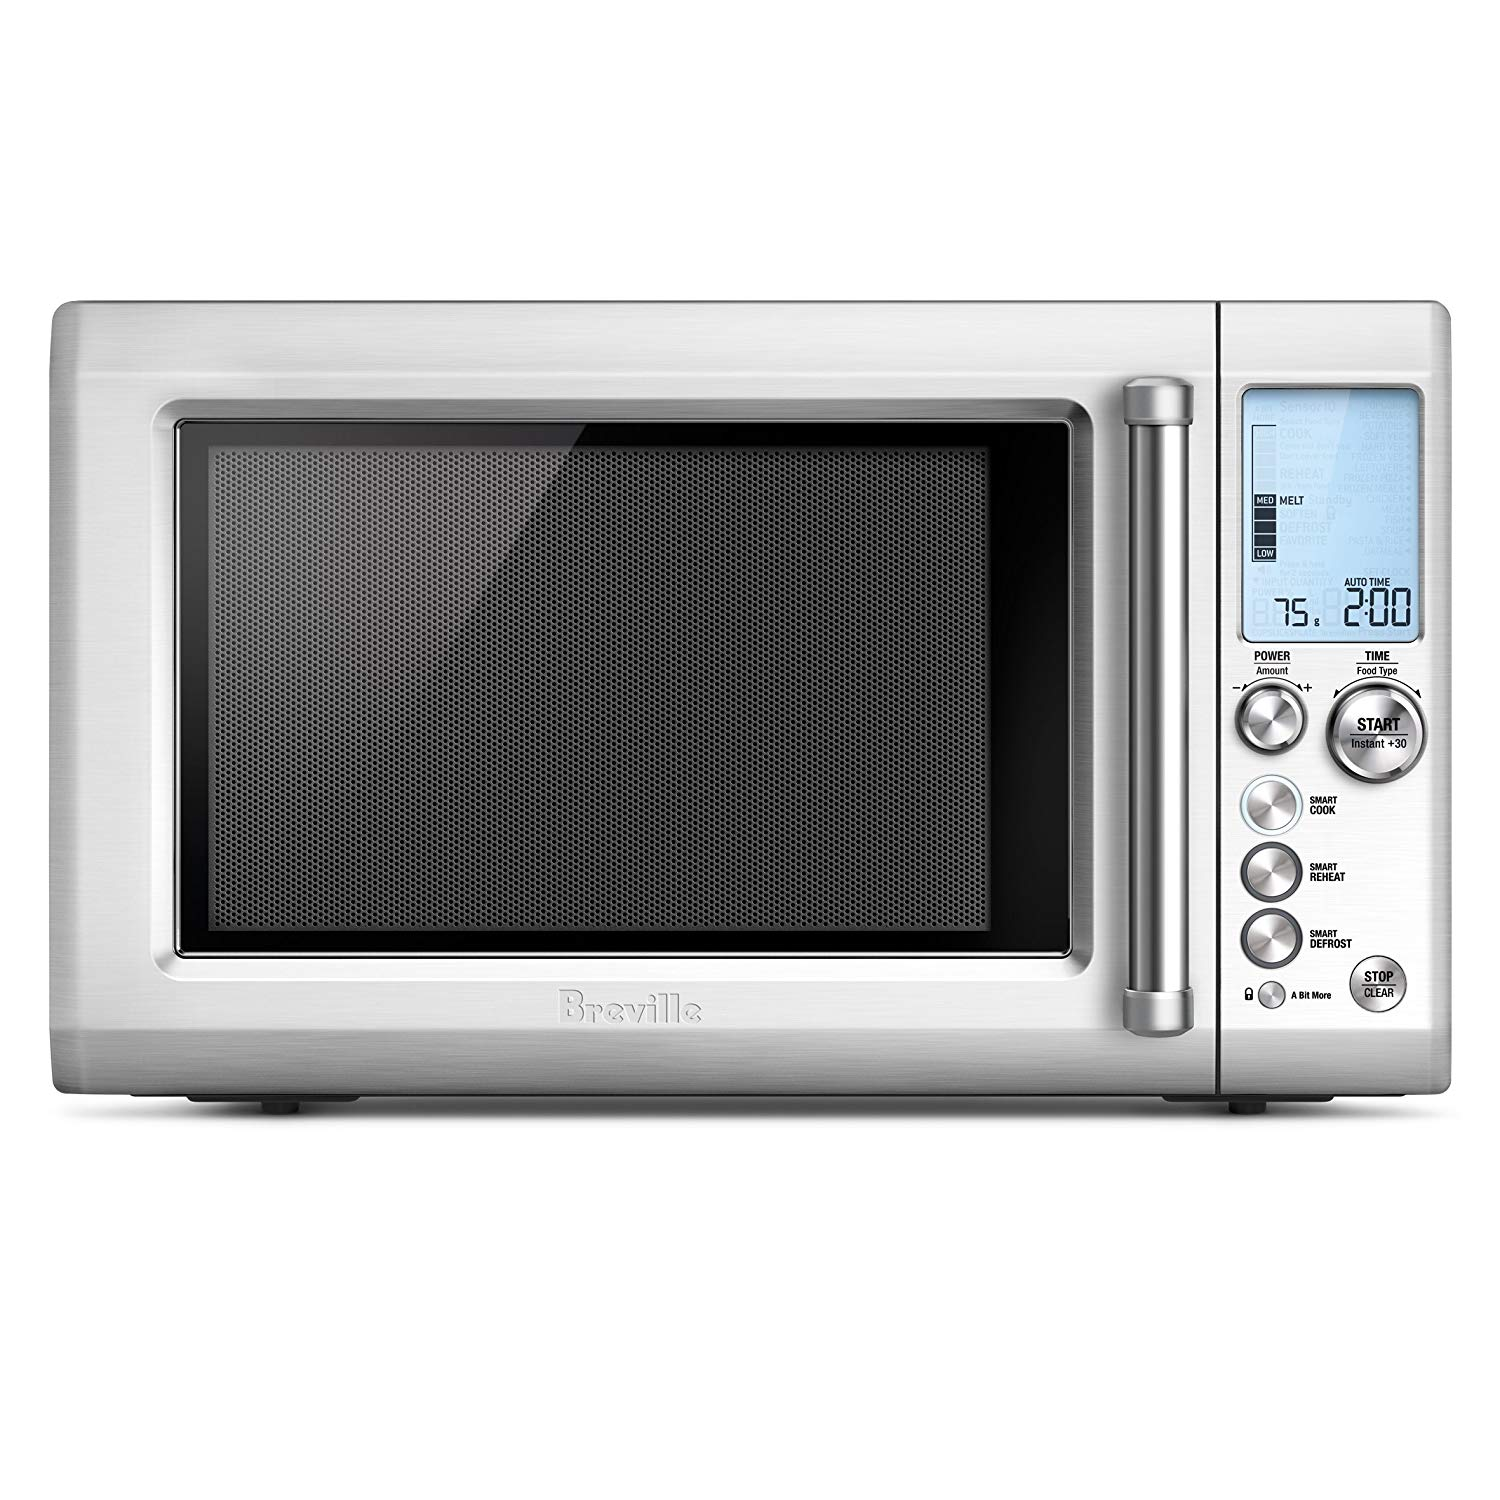 Breville Quick Touch Microwave - built-in microwaves